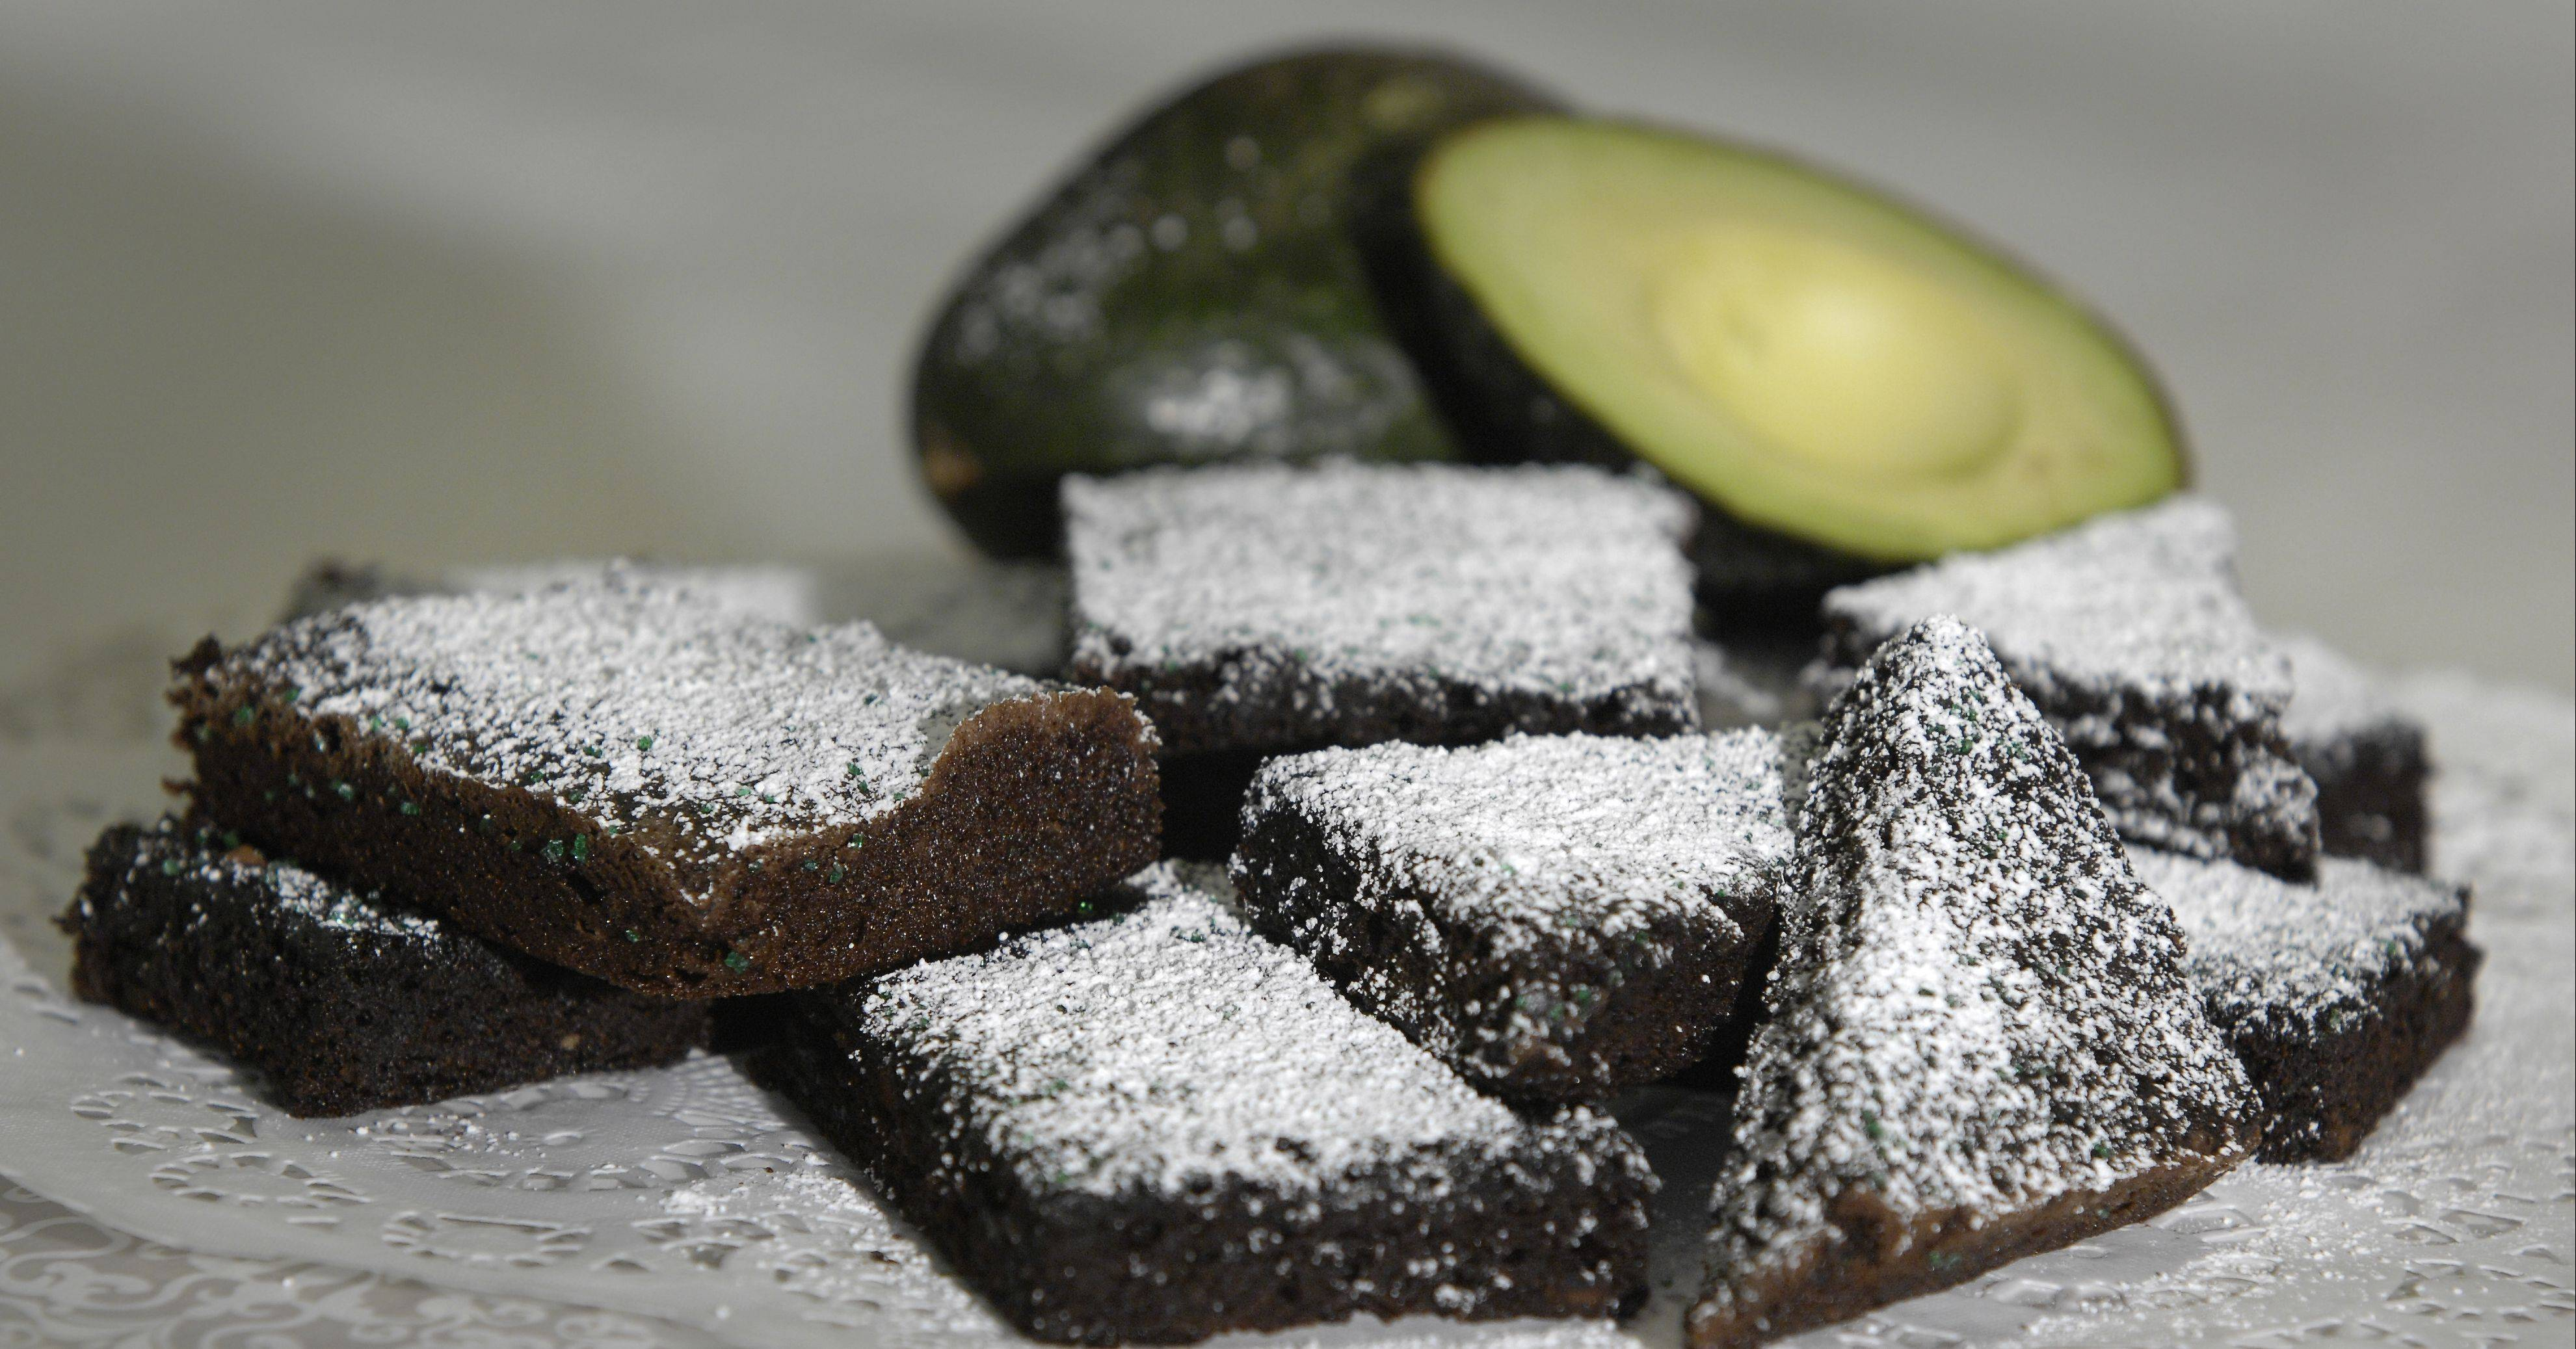 Avocado takes the place of butter in these better-for-your brownies.